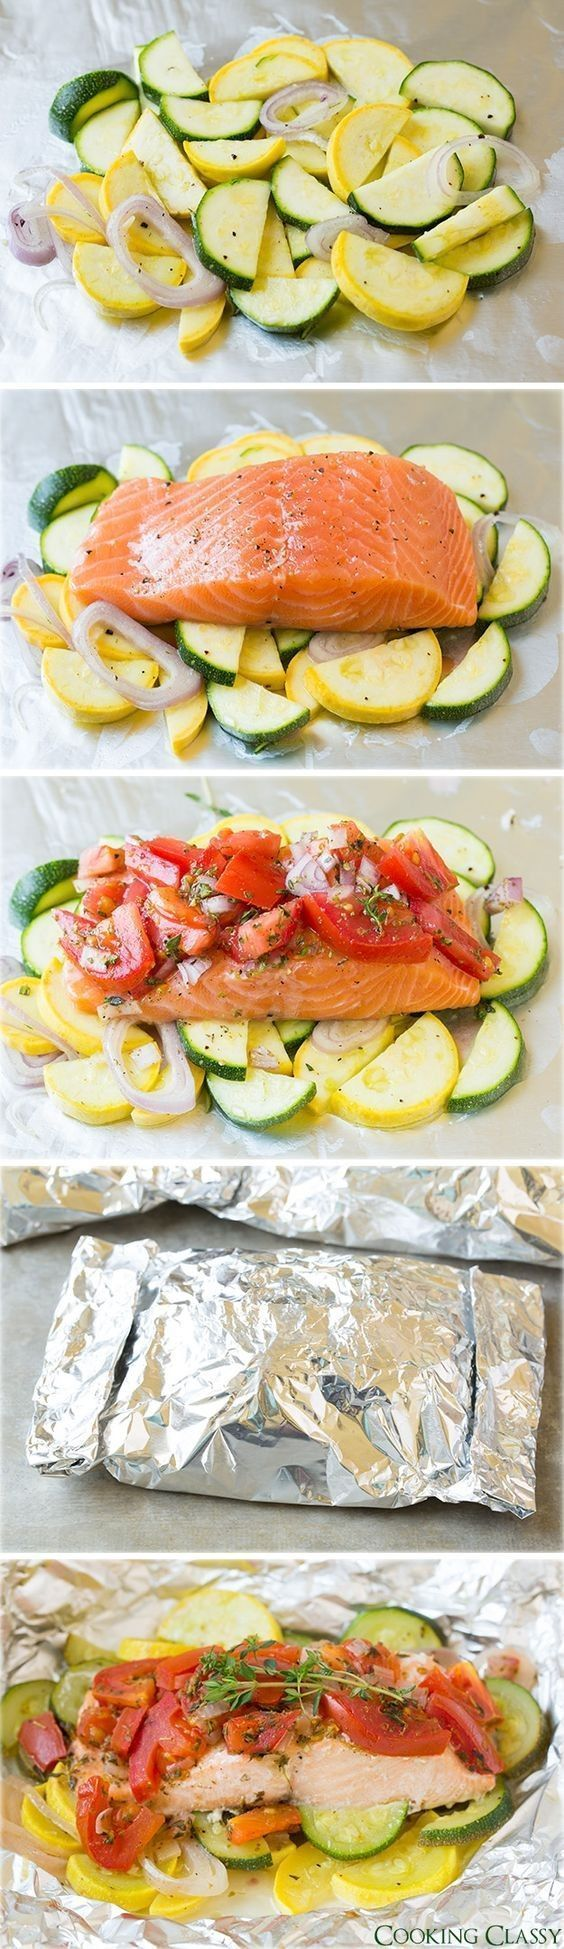 awesome 5 Low-Carb Recipes With Over 90K Repins on Pinterest